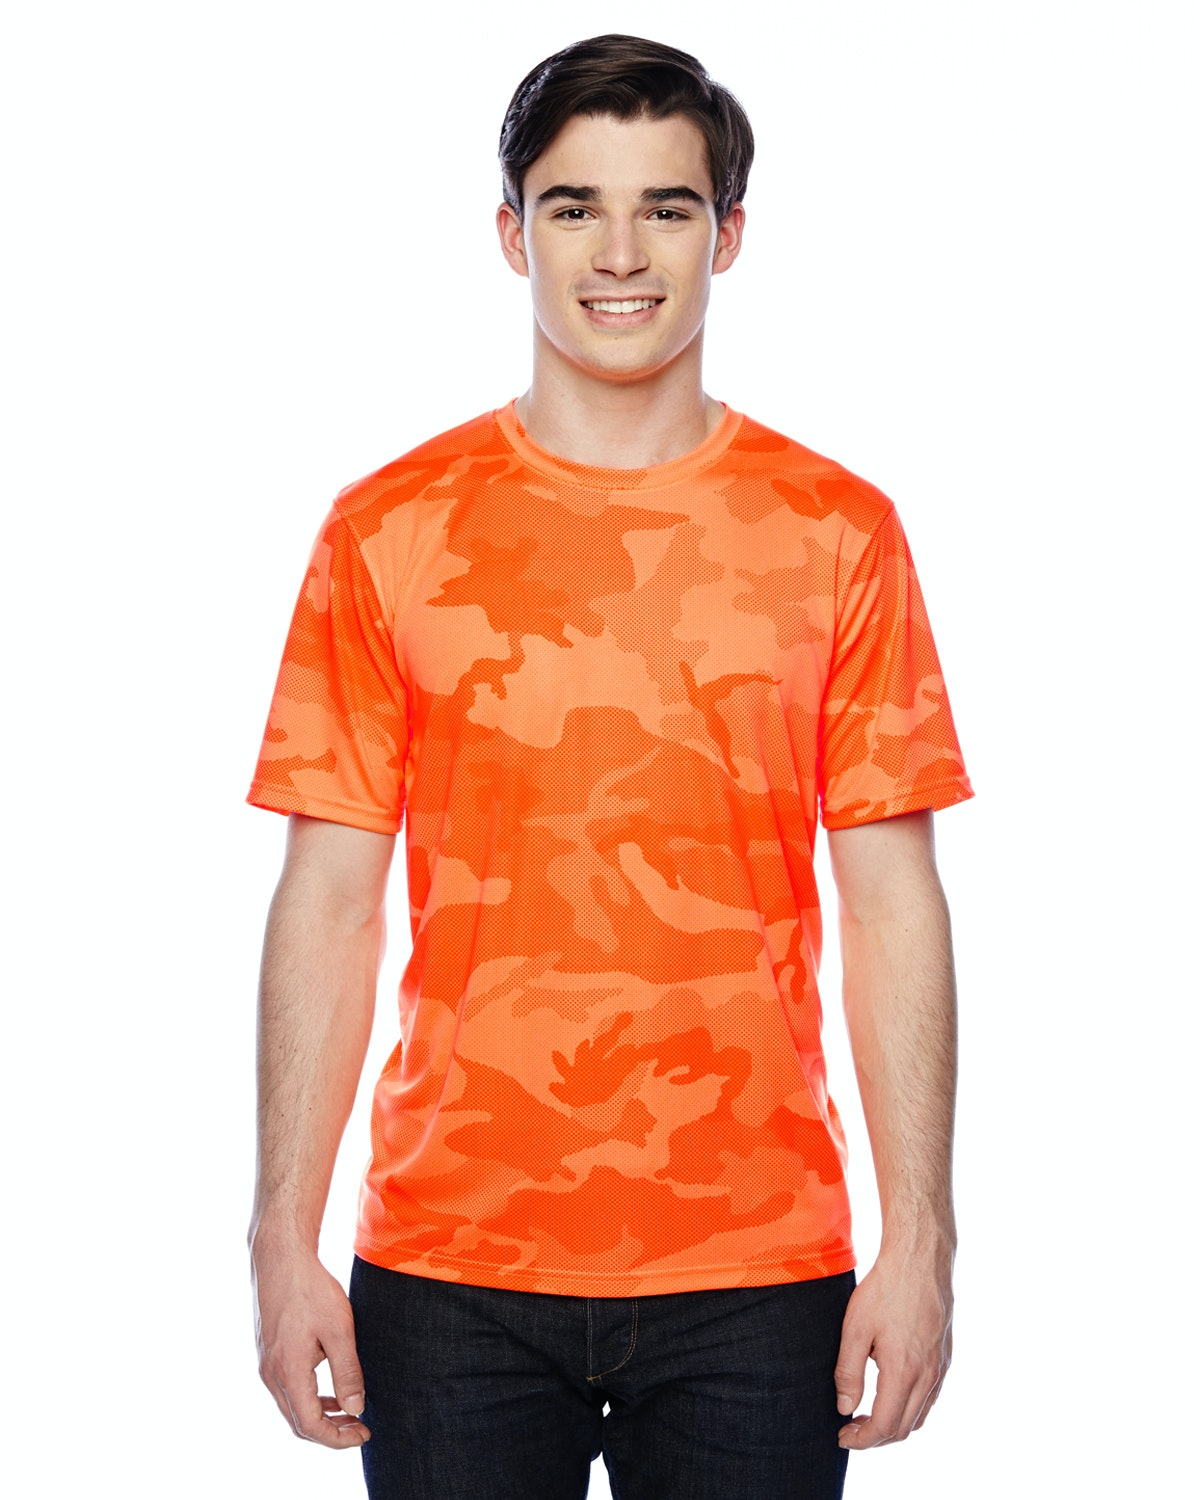 Champion CW22 Safety Orange Camo